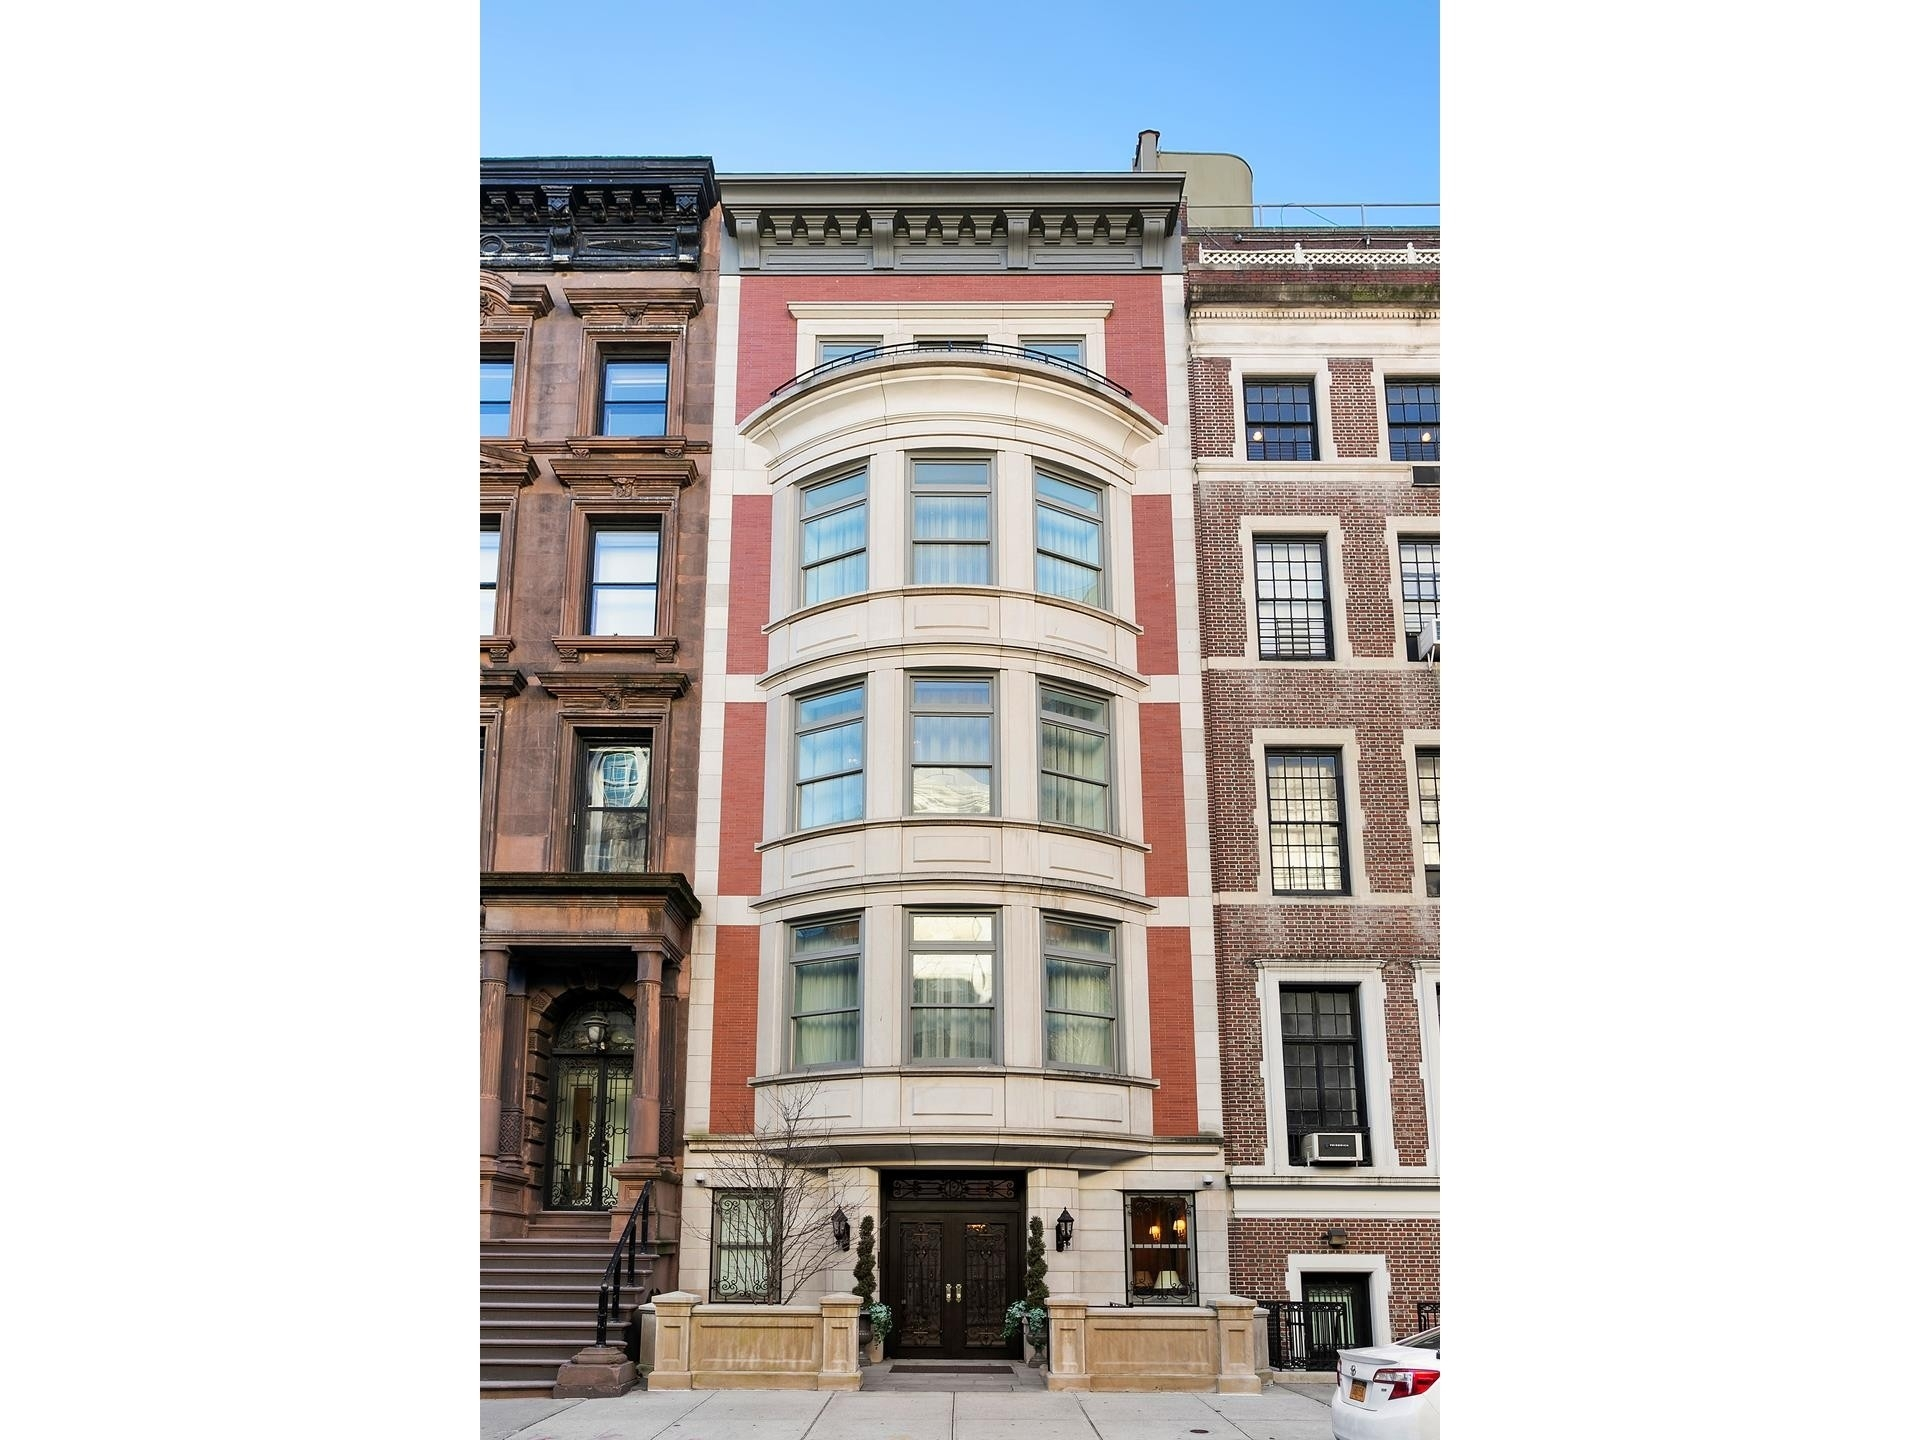 24. Single Family Townhouse for Sale at 12 E 63RD ST , TOWNHOUSE Lenox Hill, New York, NY 10065